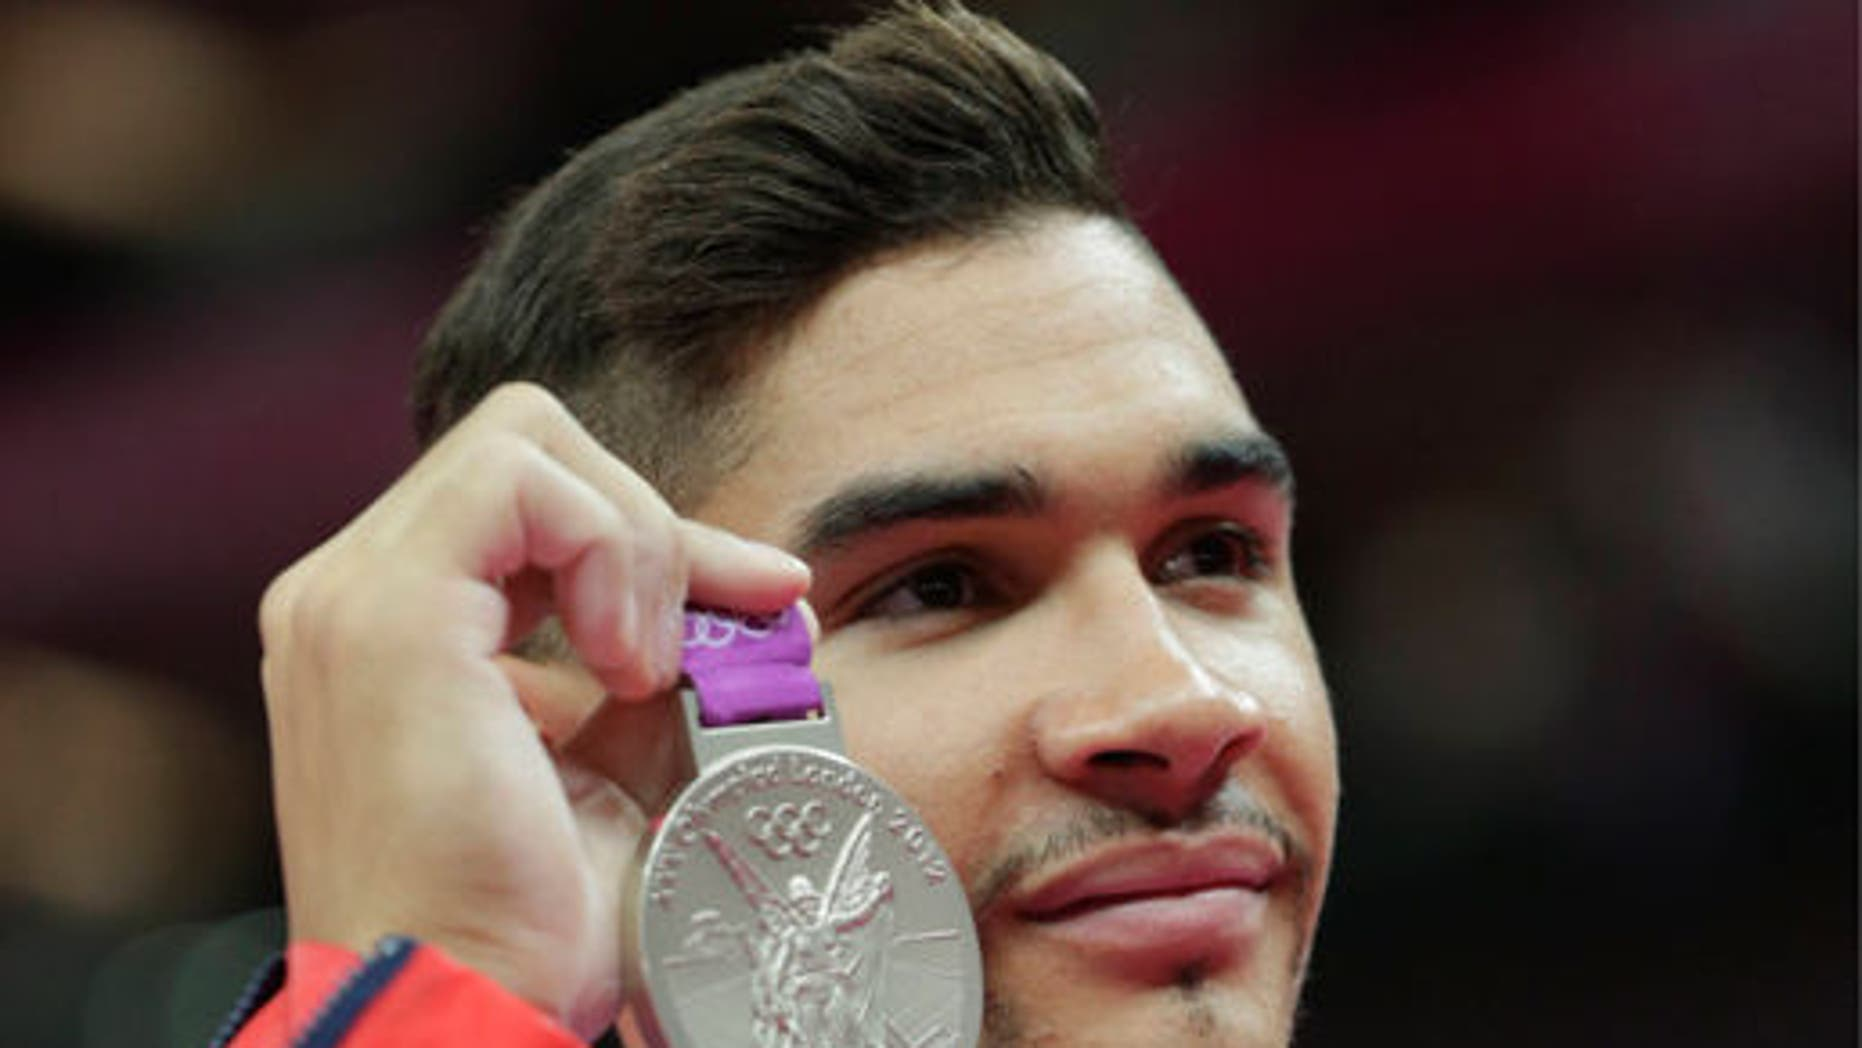 Louis Smith displays his silver medal during the artistic gymnastics men's pommel horse finals at the 2012 Summer Olympics.